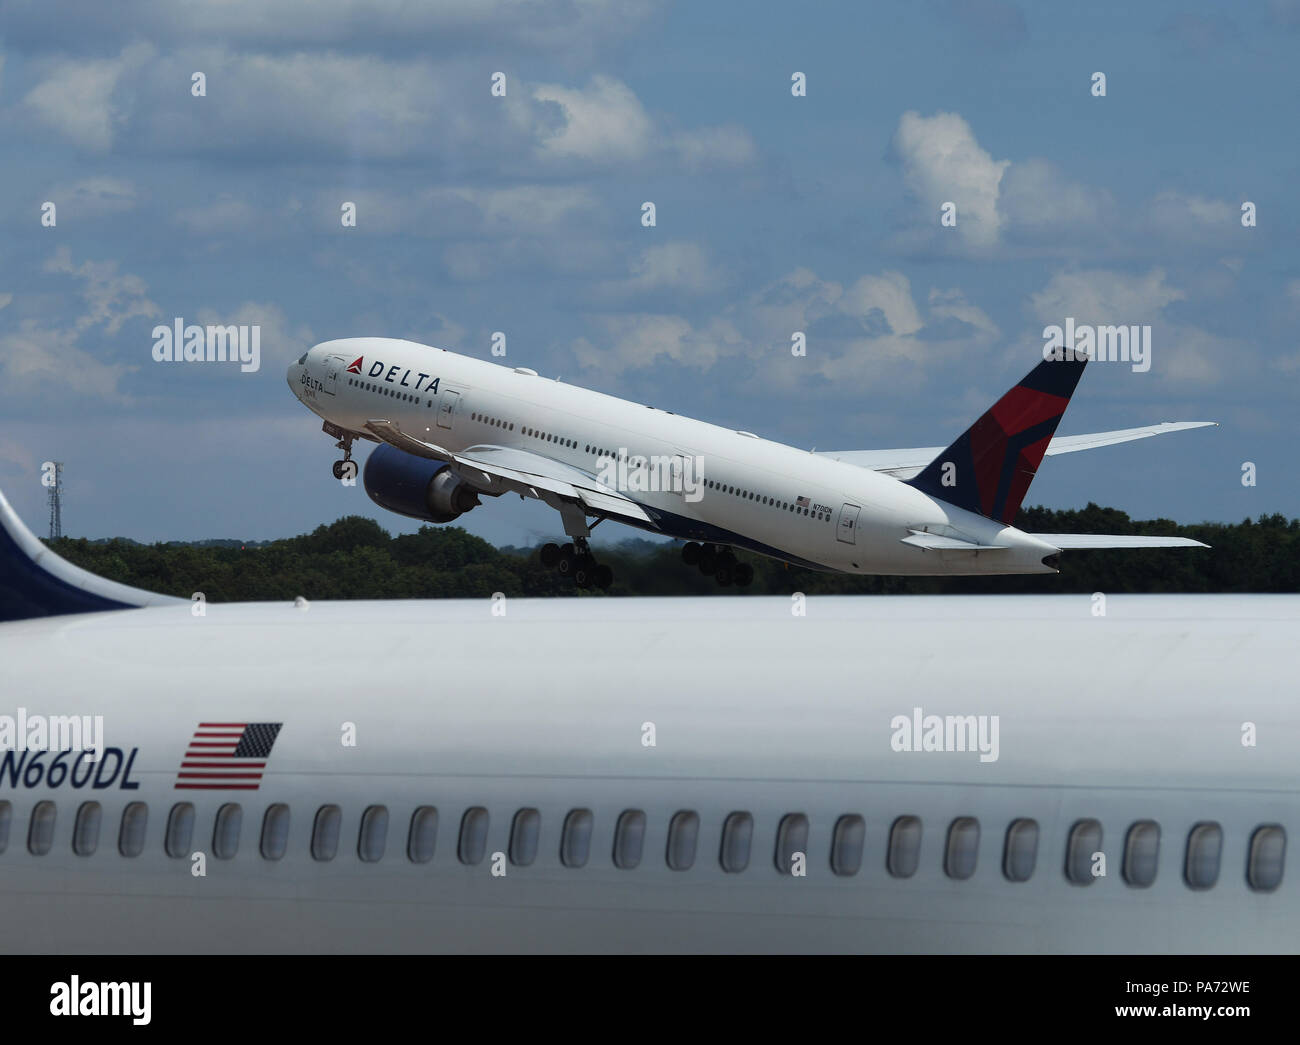 Atlanta, USA. 20th July, 2018. The first Atlanta-Shanghai flight takes off at Hartsfield-Jackson Atlanta International Airport in Atlanta, the United States, on July 20, 2018. U.S. airline giant Delta Air Line relaunched a non-stop flight route Friday between Atlanta, state of Georgia, and China's Shanghai. Credit: Liu Jie/Xinhua/Alamy Live News - Stock Image